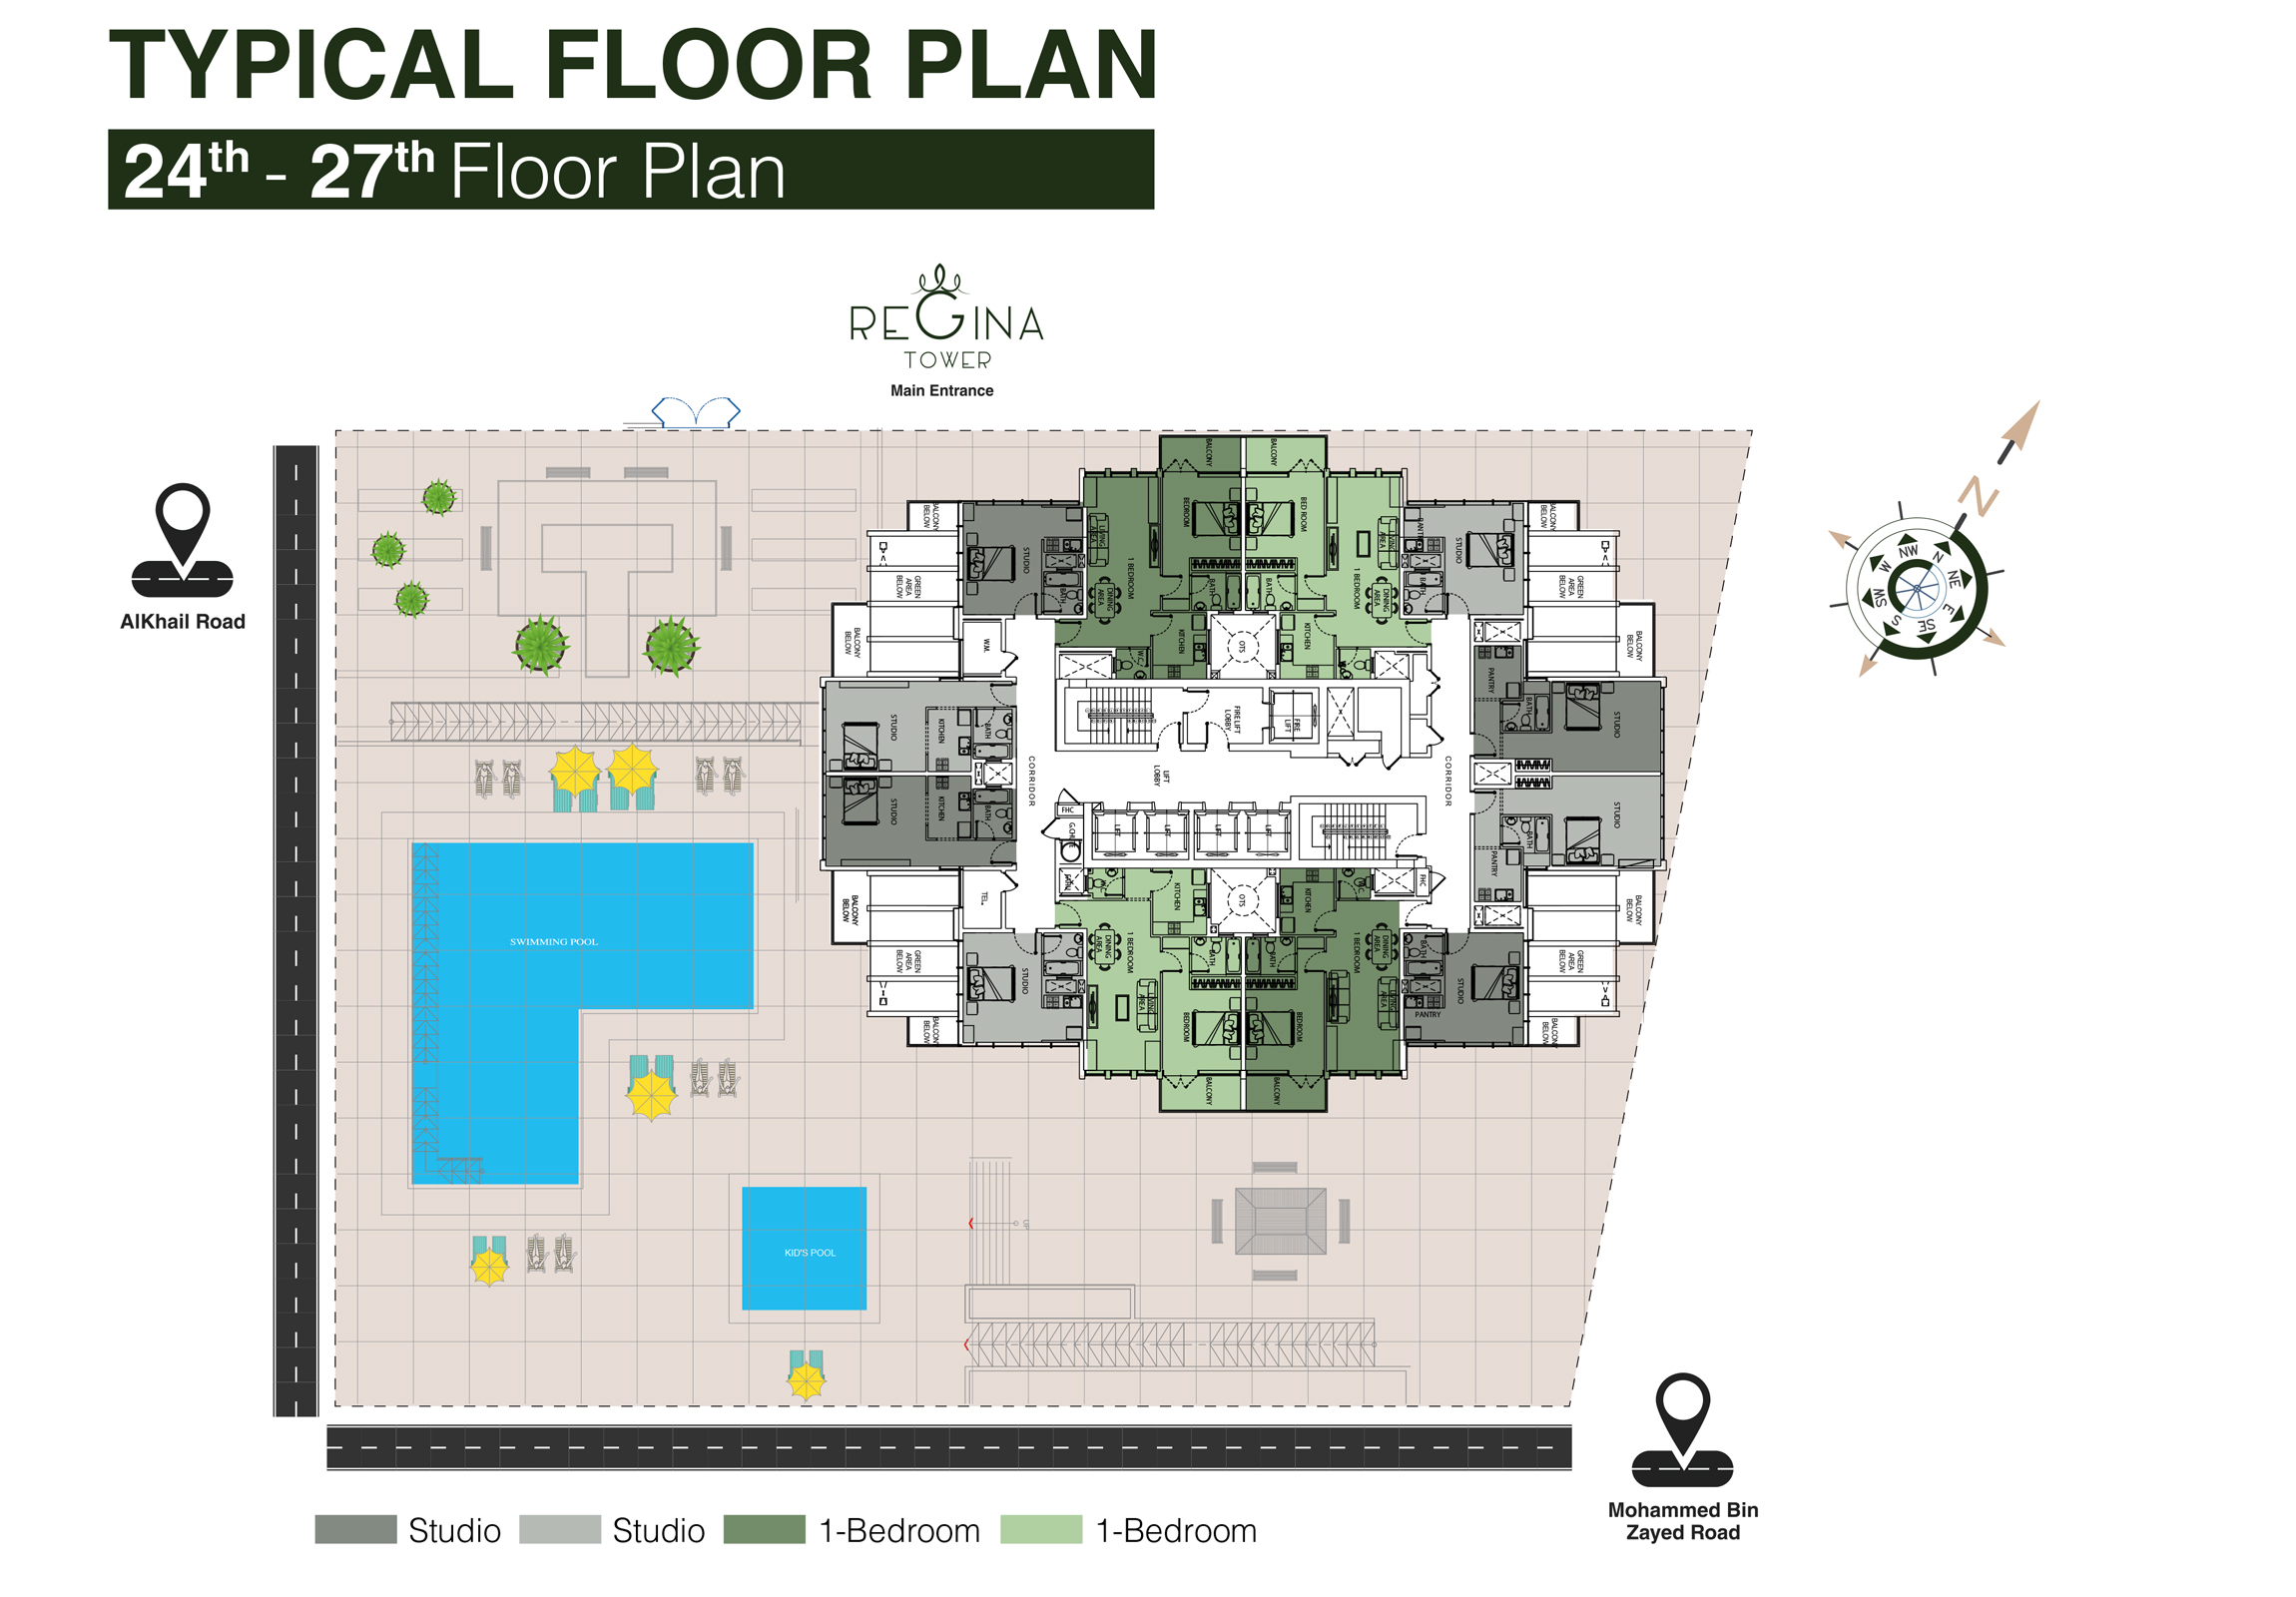 Typical Floor Plan 24th to 27th Floor